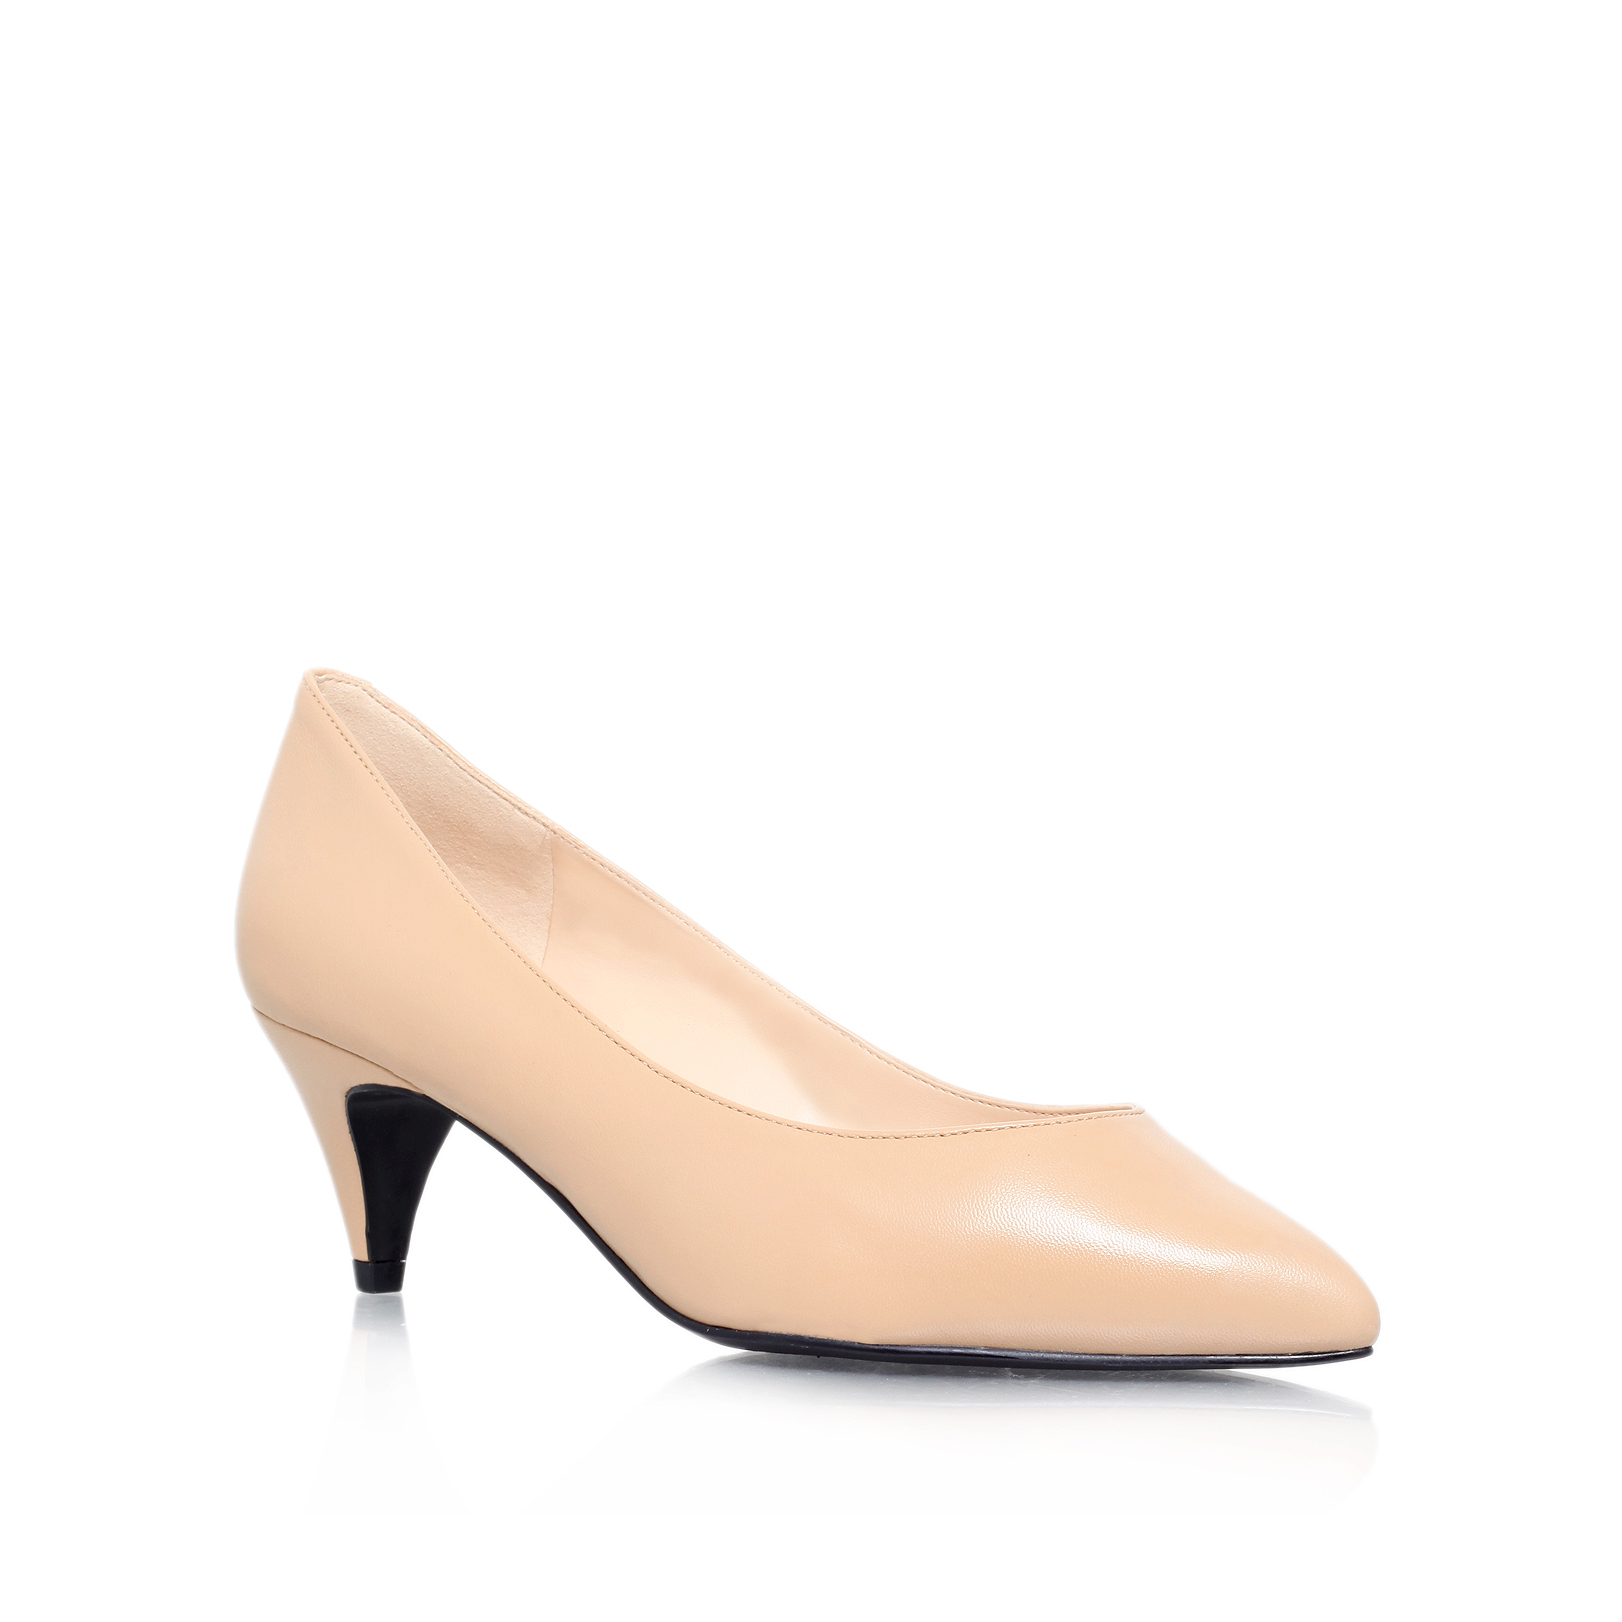 Nude patent 'Gretchen' mid wedge heel wide fit court shoes Save. £ Dune Extra wide fit nude sling back court shoes Save. Was £ Then £ Now £ > Principles Nude patent 'Cling' mid block heel wide fit slingbacks Natural patent leather 'Dalia Rose' high heel court shoes Save. £ Head Over Heels by Dune.